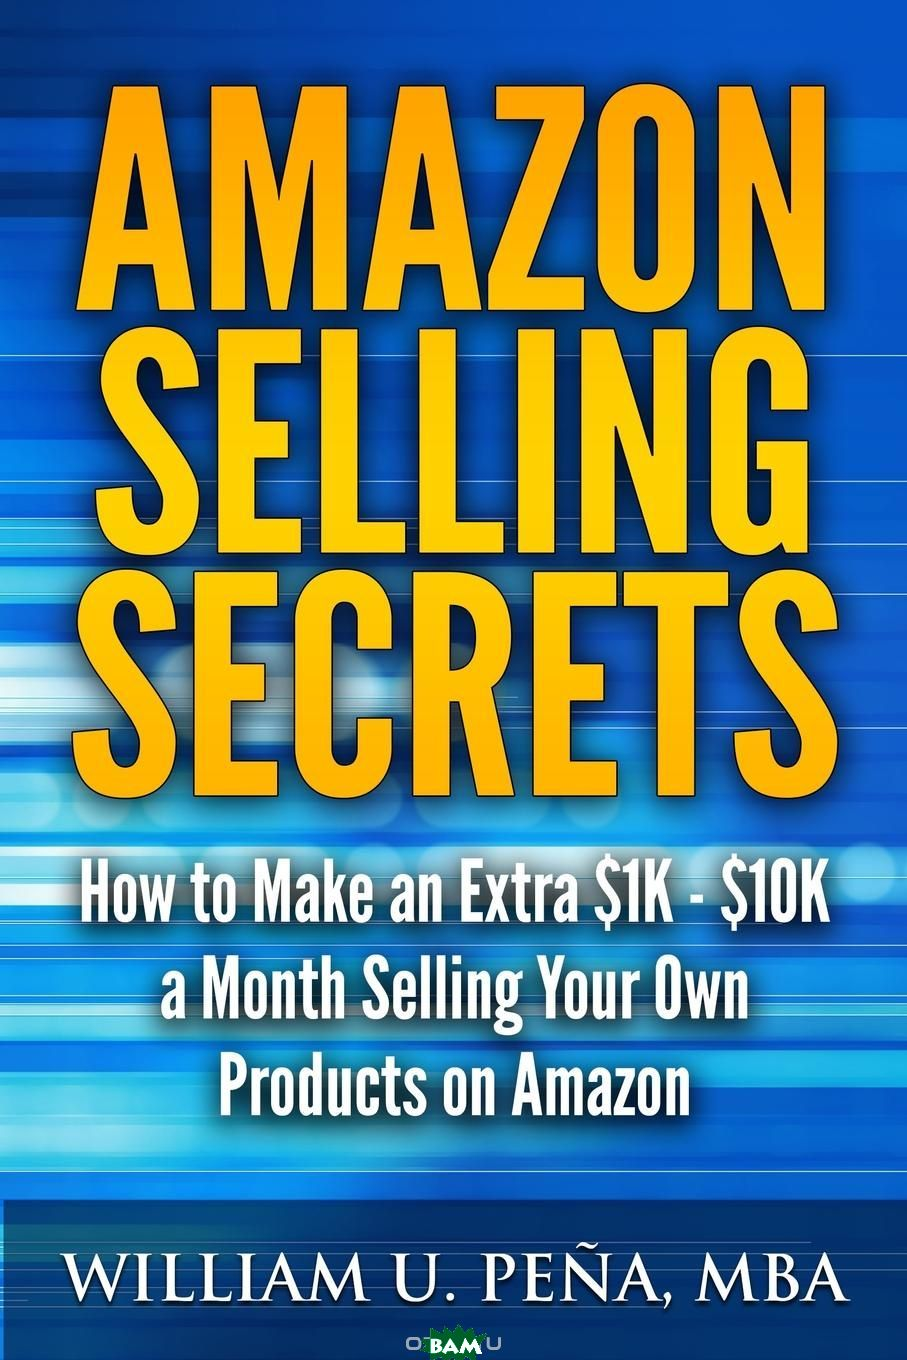 Amazon Selling Secrets. How to Make an Extra . 1K - . 10K a Month Selling Your Own Products on Amazon